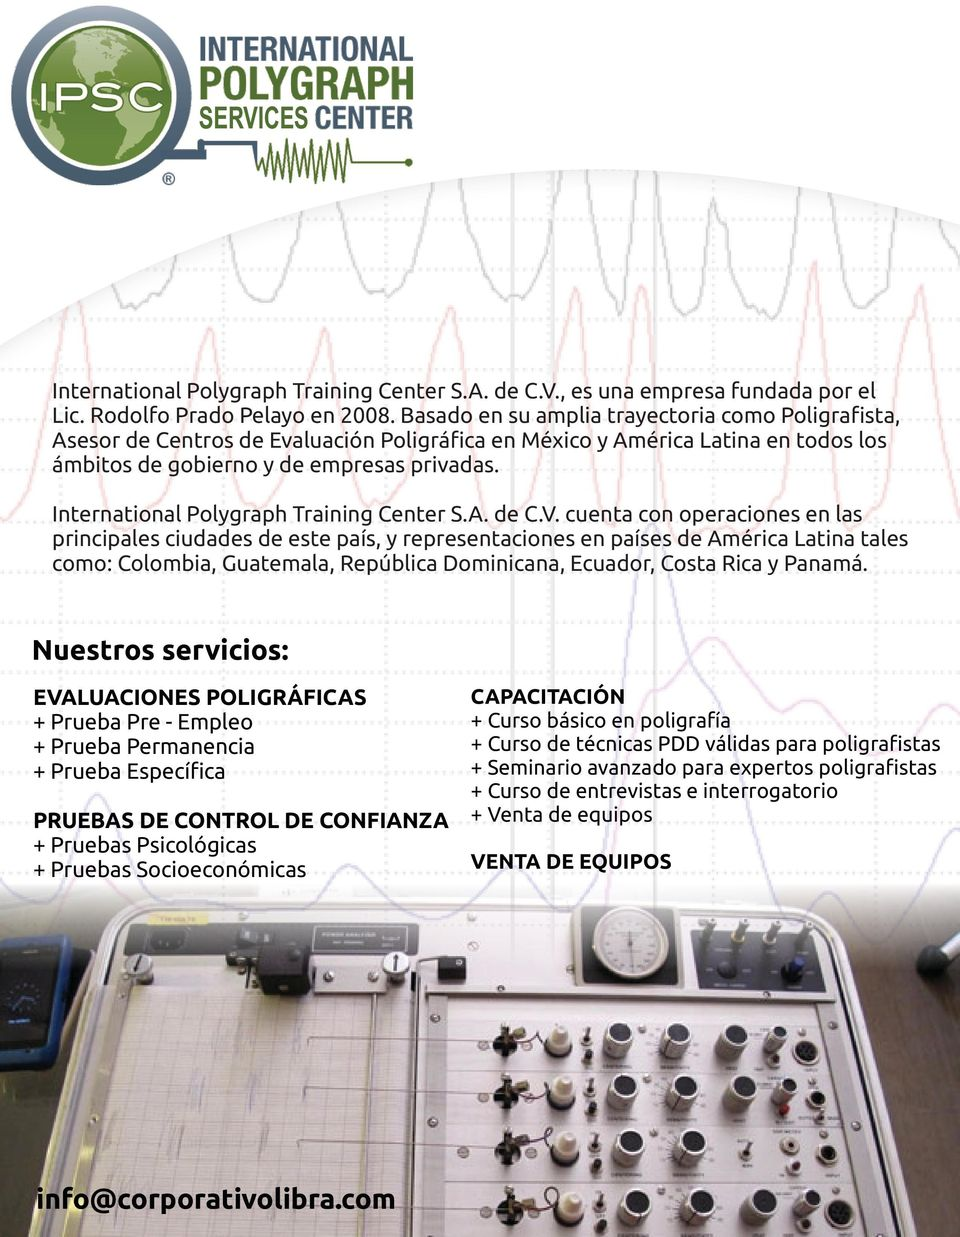 International Polygraph Training Center S.A. de C.V.